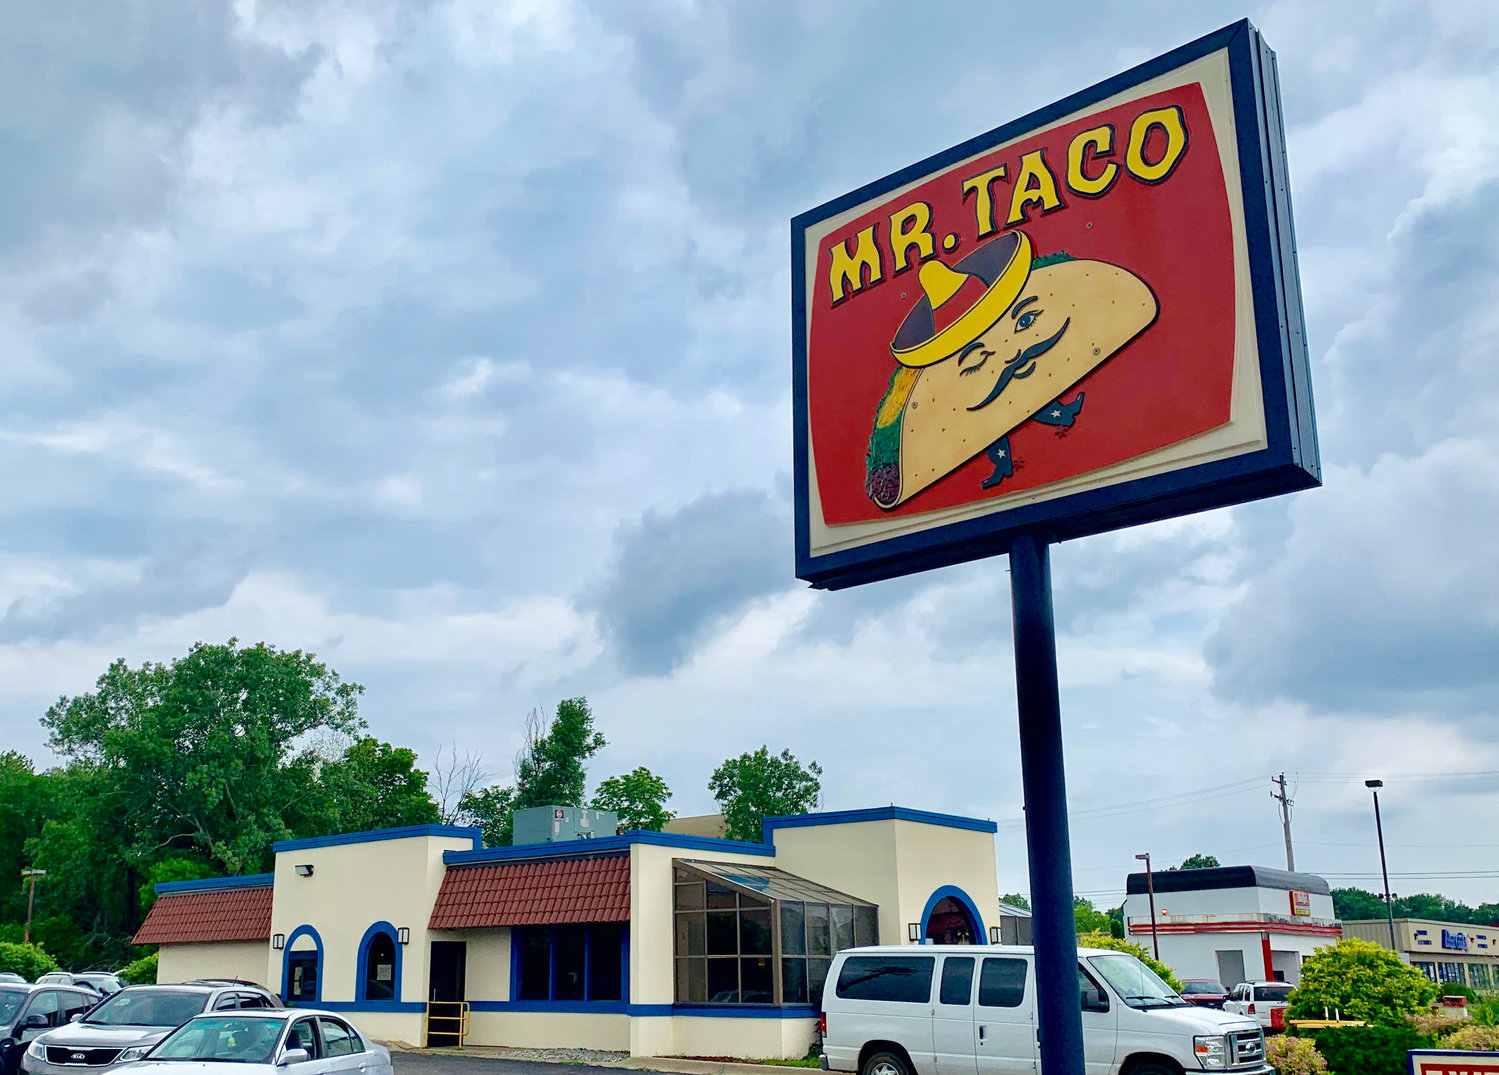 Mr. Taco in Lansing.